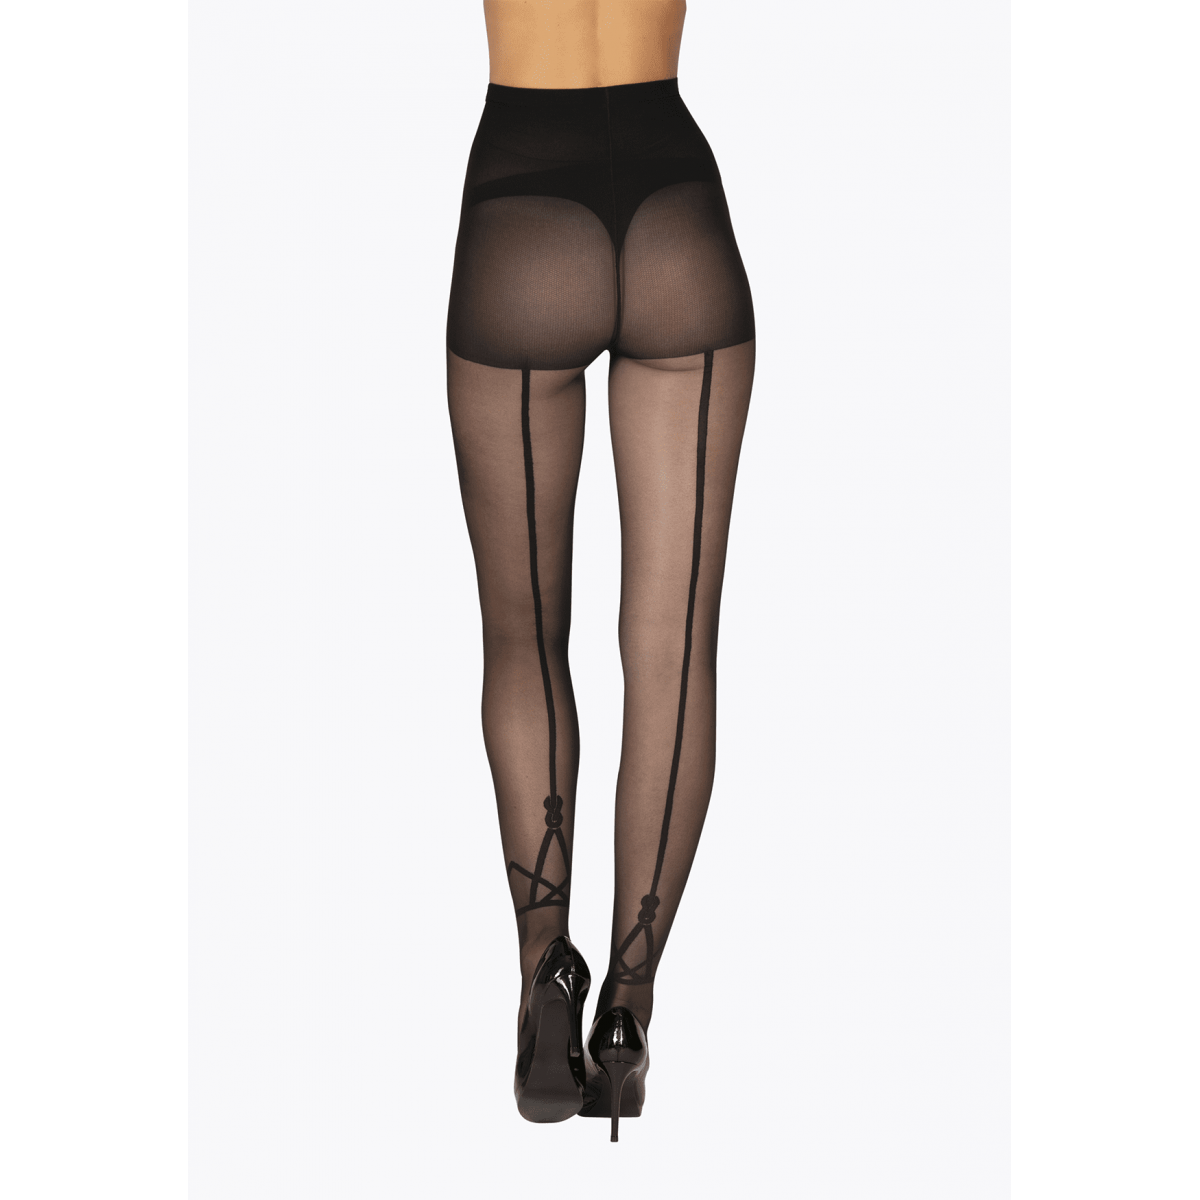 Collant Fantaisie Transparent 20D avec Baguette Magic Nights